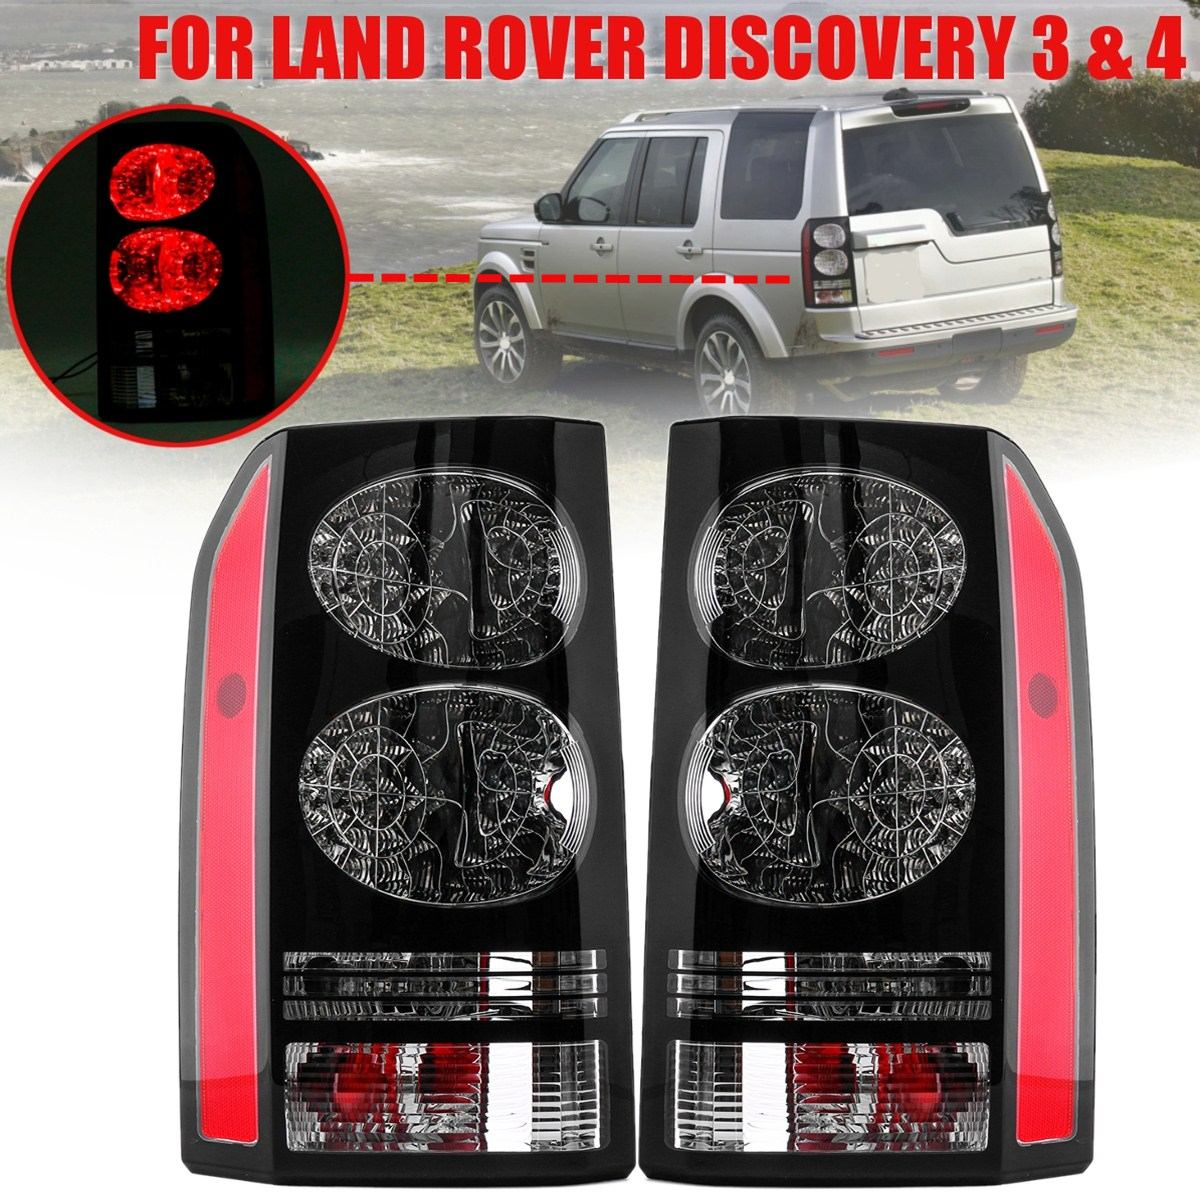 FOR Discovery 3 4 for land rover 2010 2016 Rear brake light Rear Tail lamps Tuning OE Parts LR052397 Car the latest Taillights